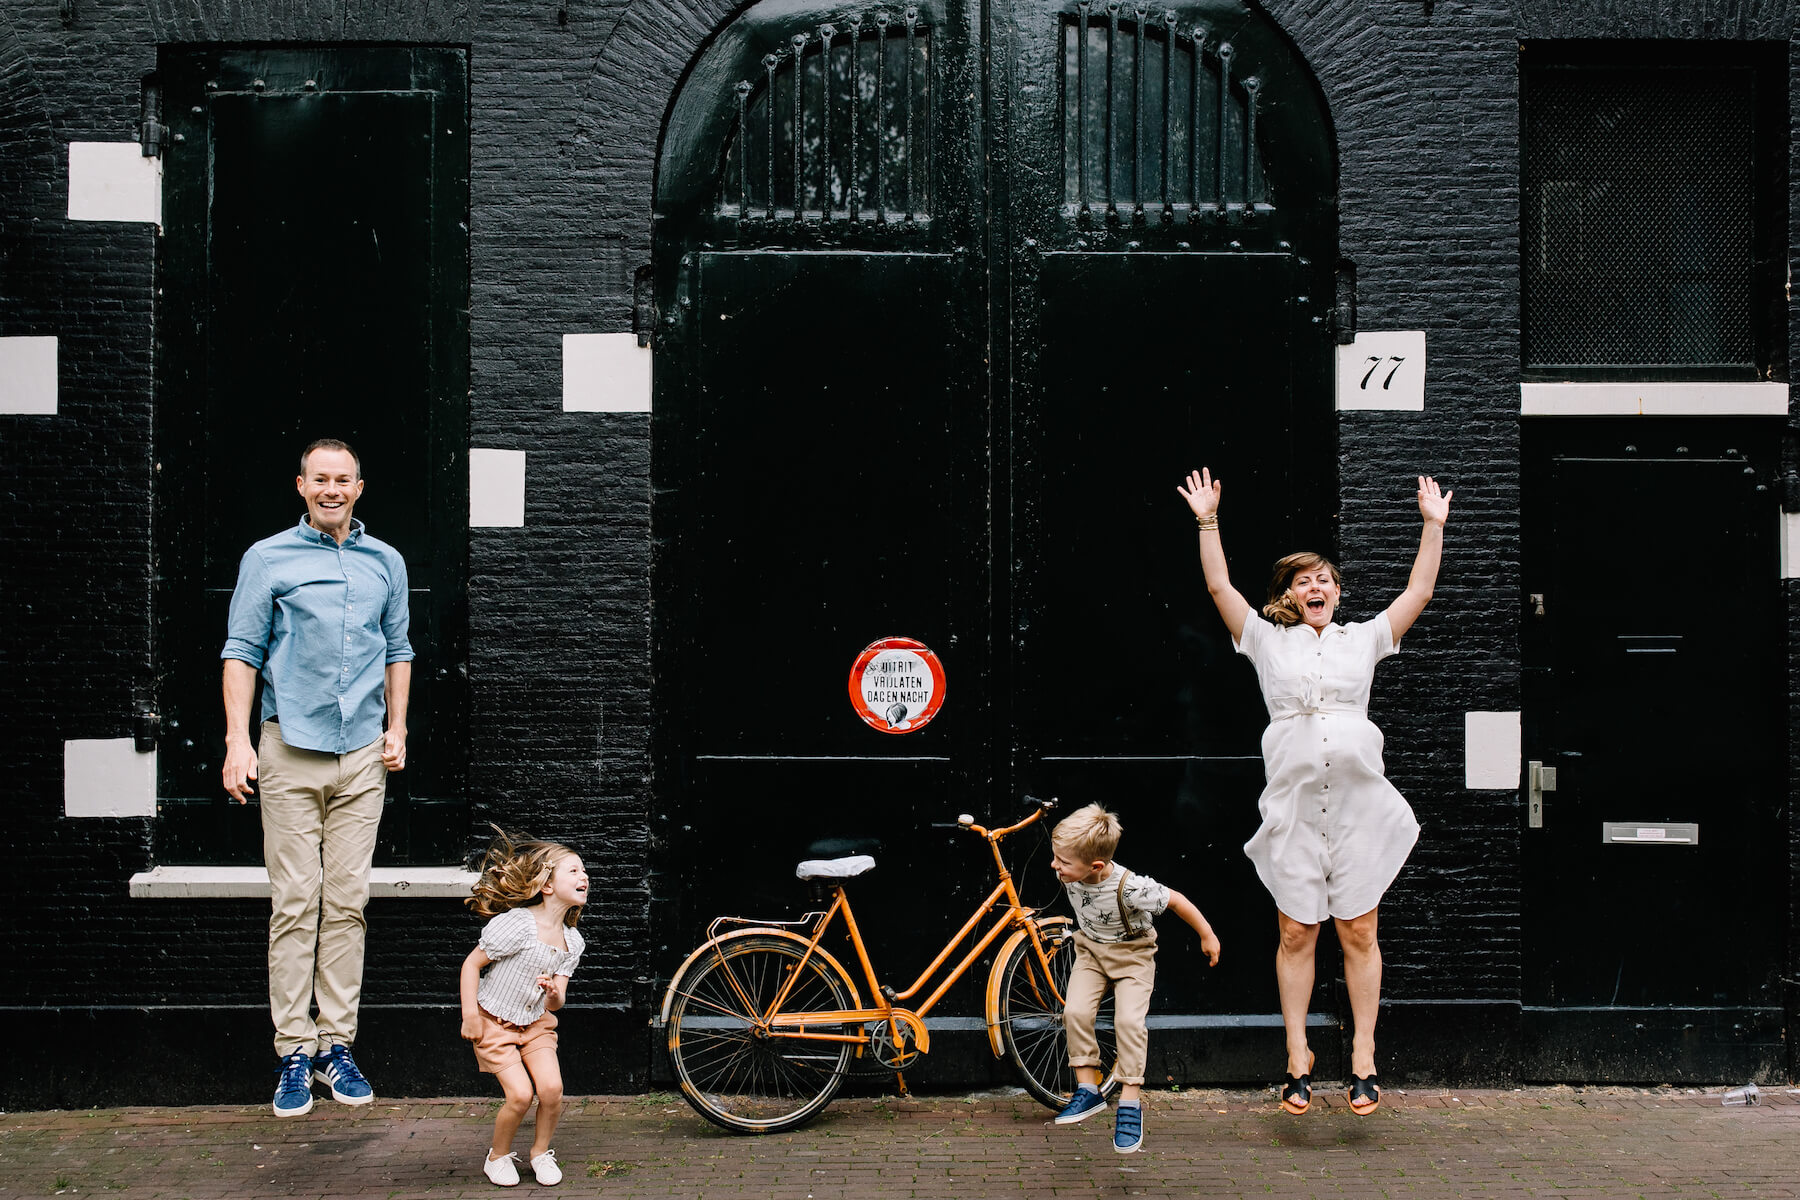 a family jumping and laughing in front of black brick building in Amsterdam, Netherlands